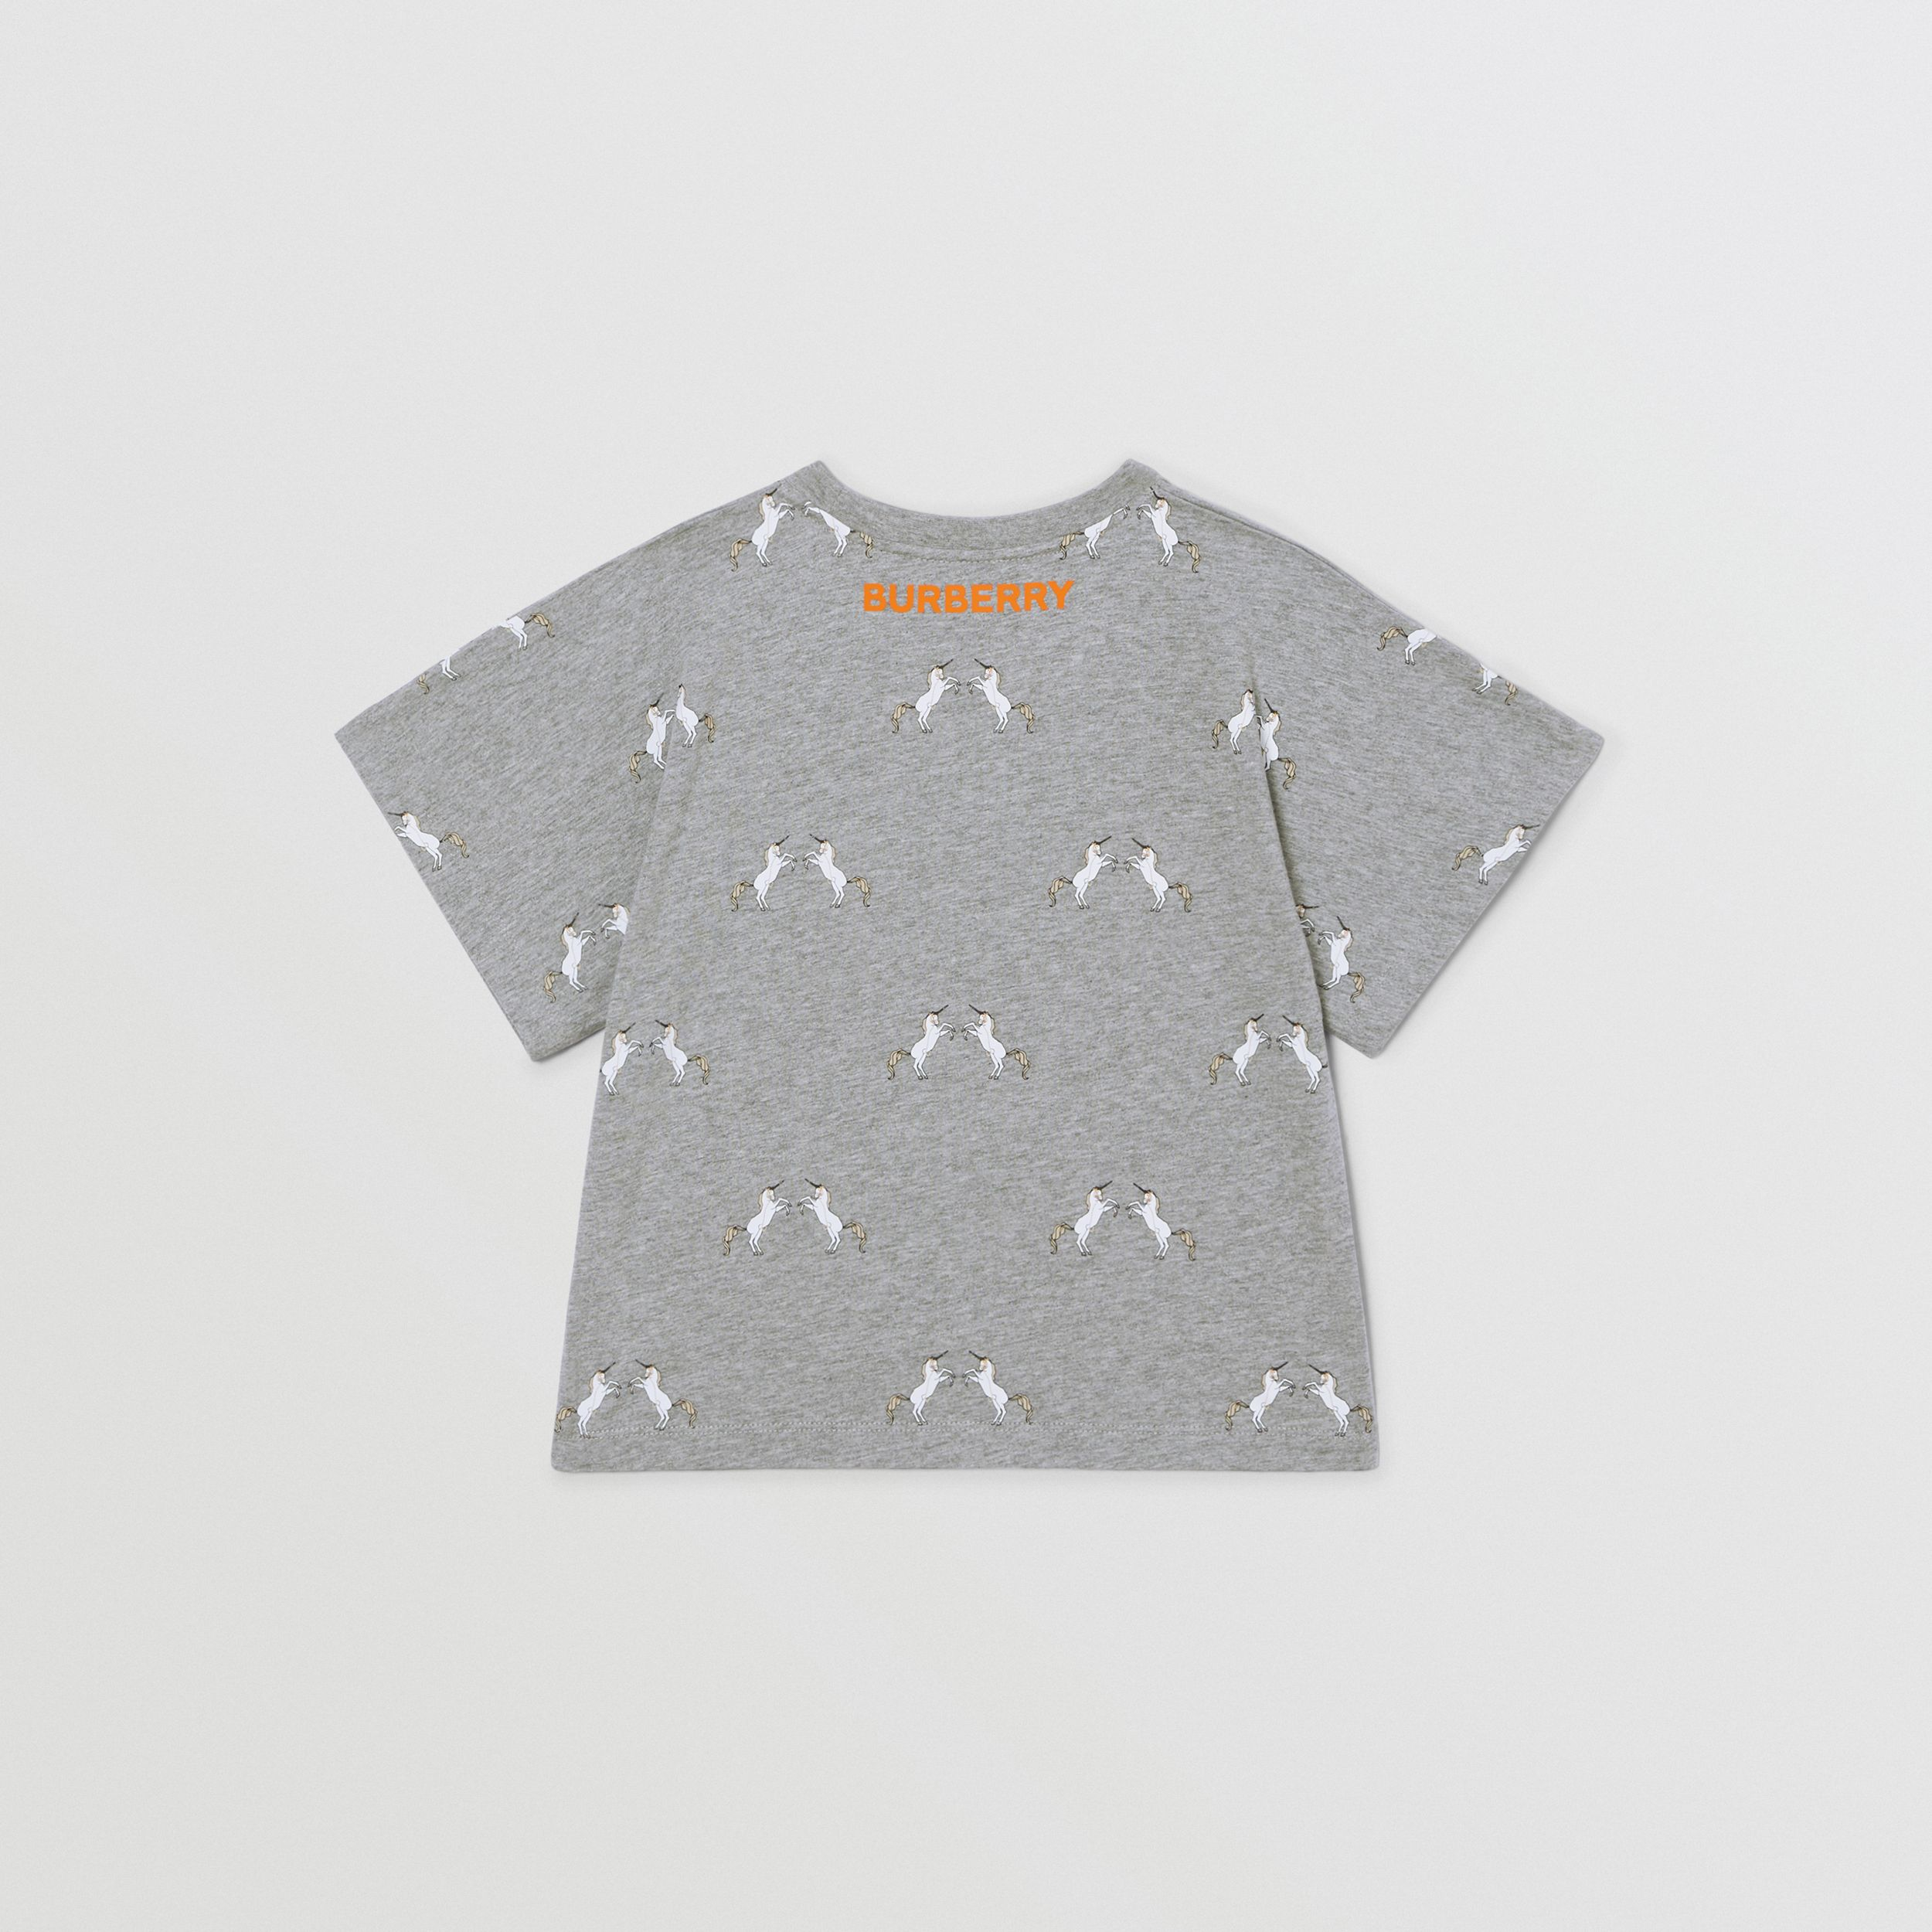 Unicorn Slogan Print Cotton T-shirt in Grey Melange | Burberry - 4